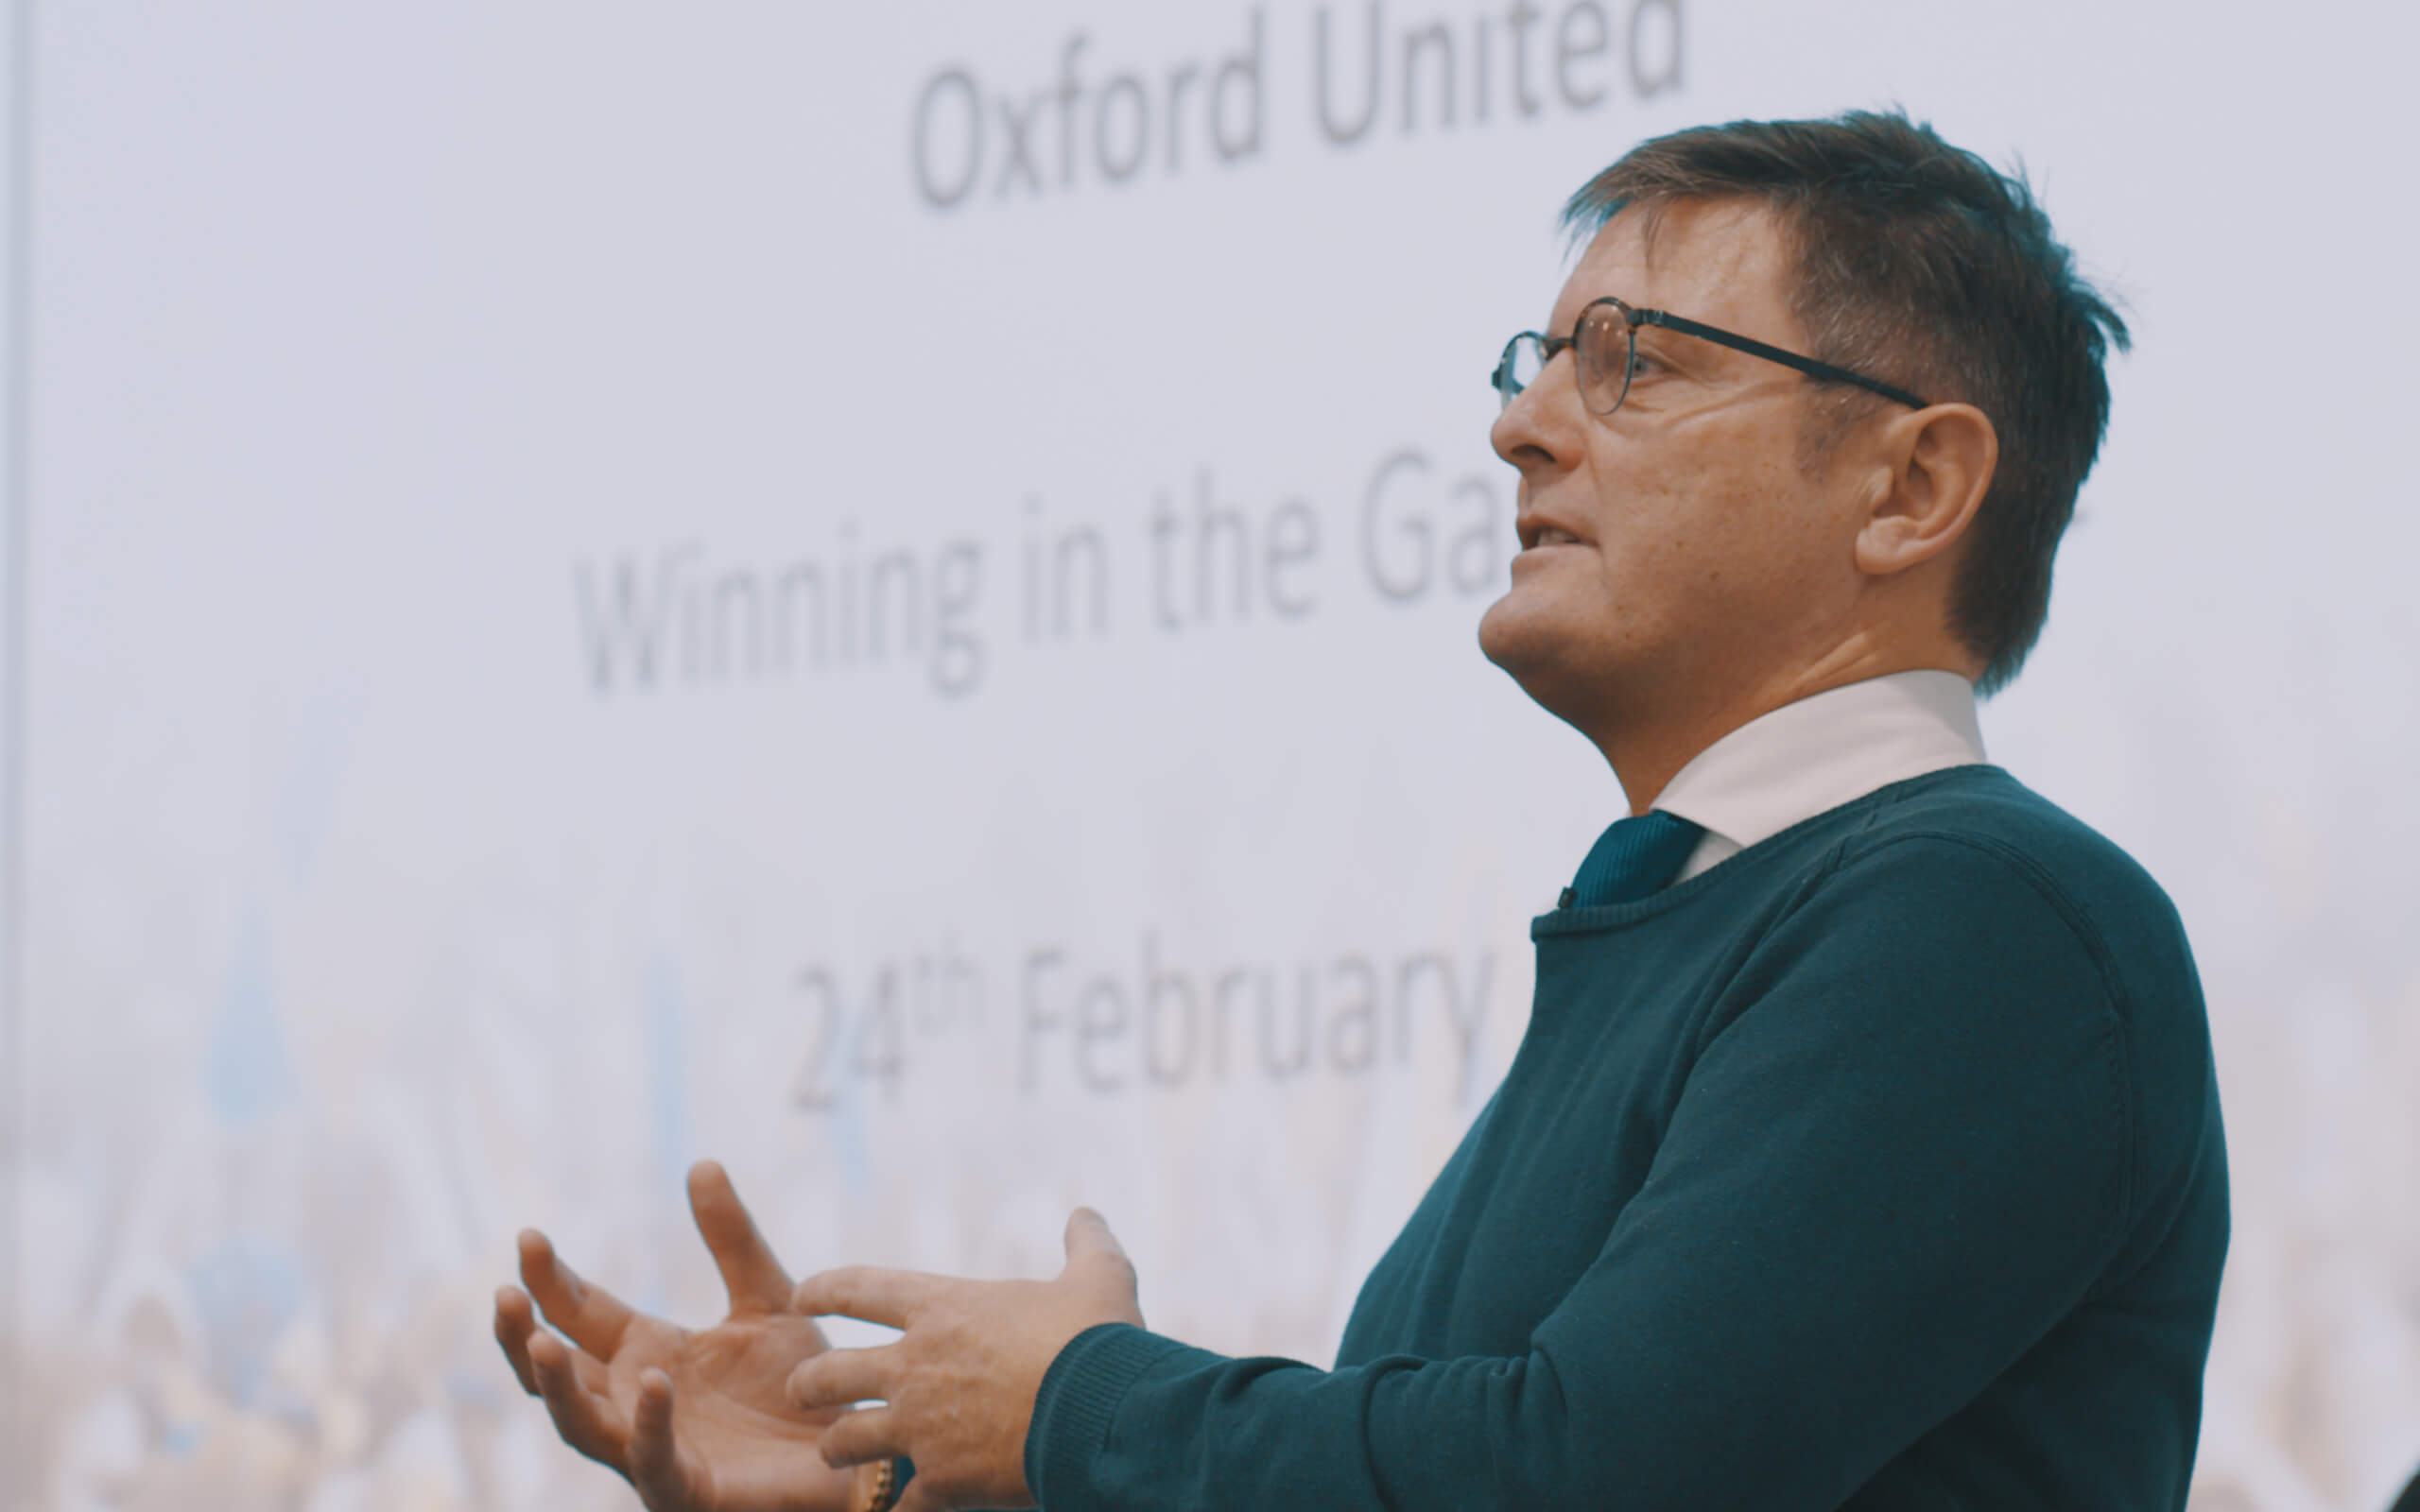 Lecturer in front of powerpoint